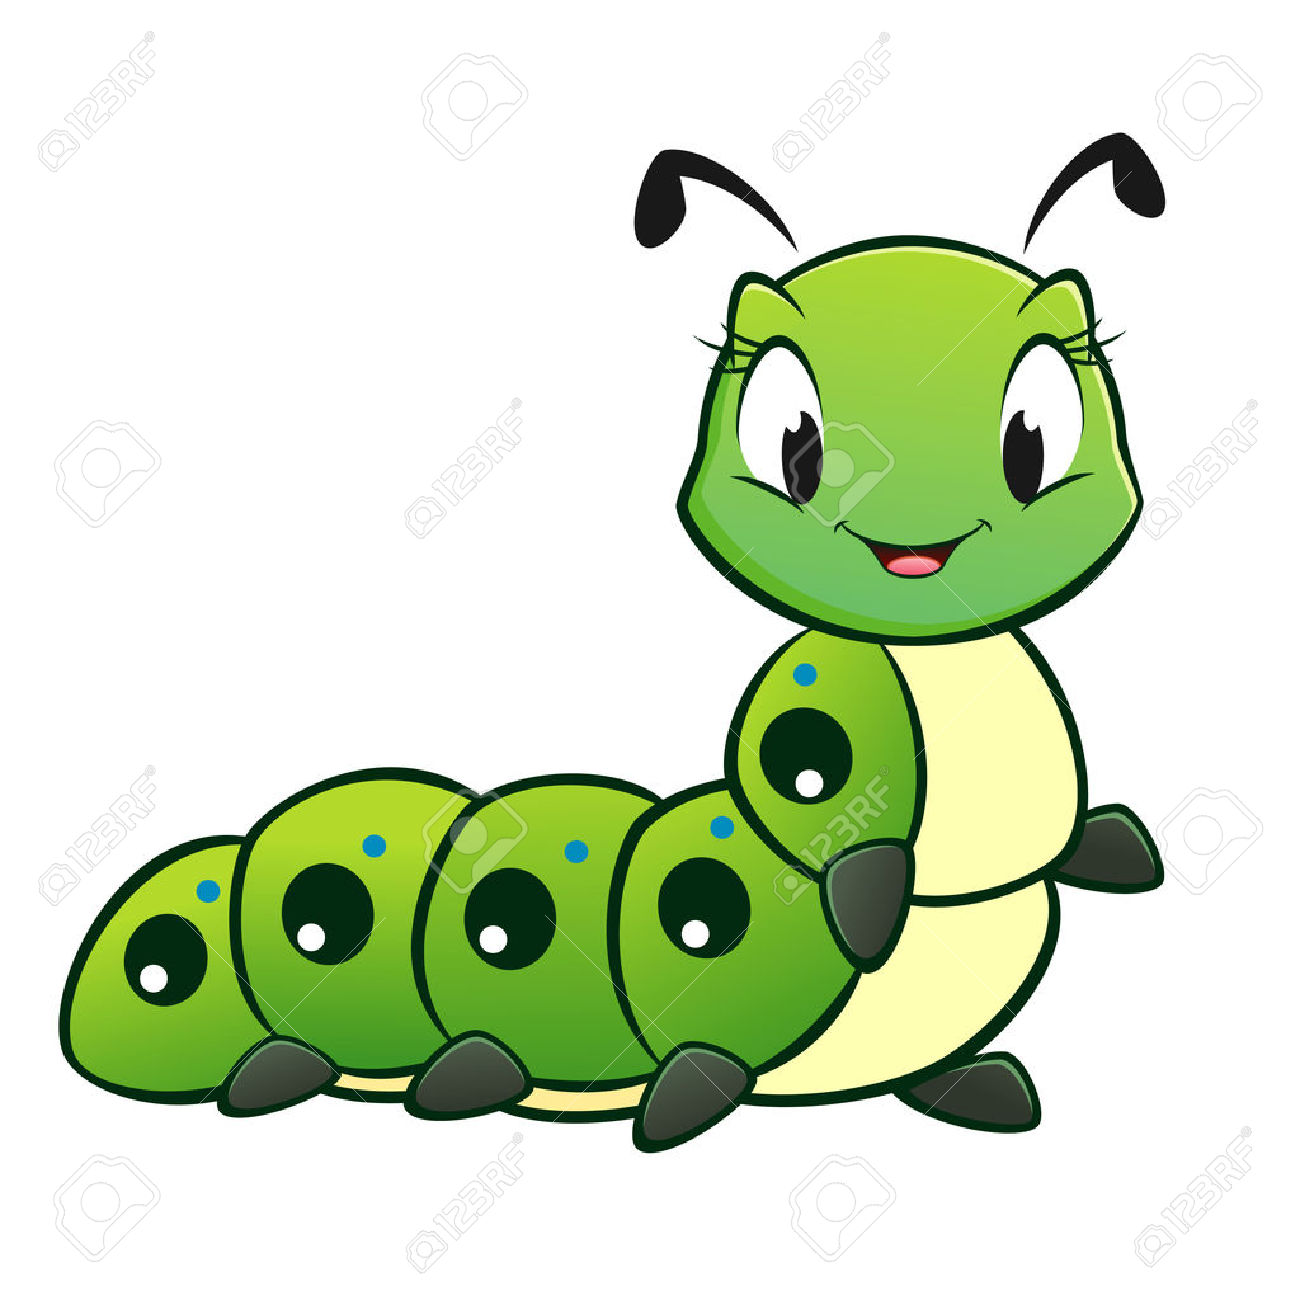 Caterpillar clipart #8, Download drawings